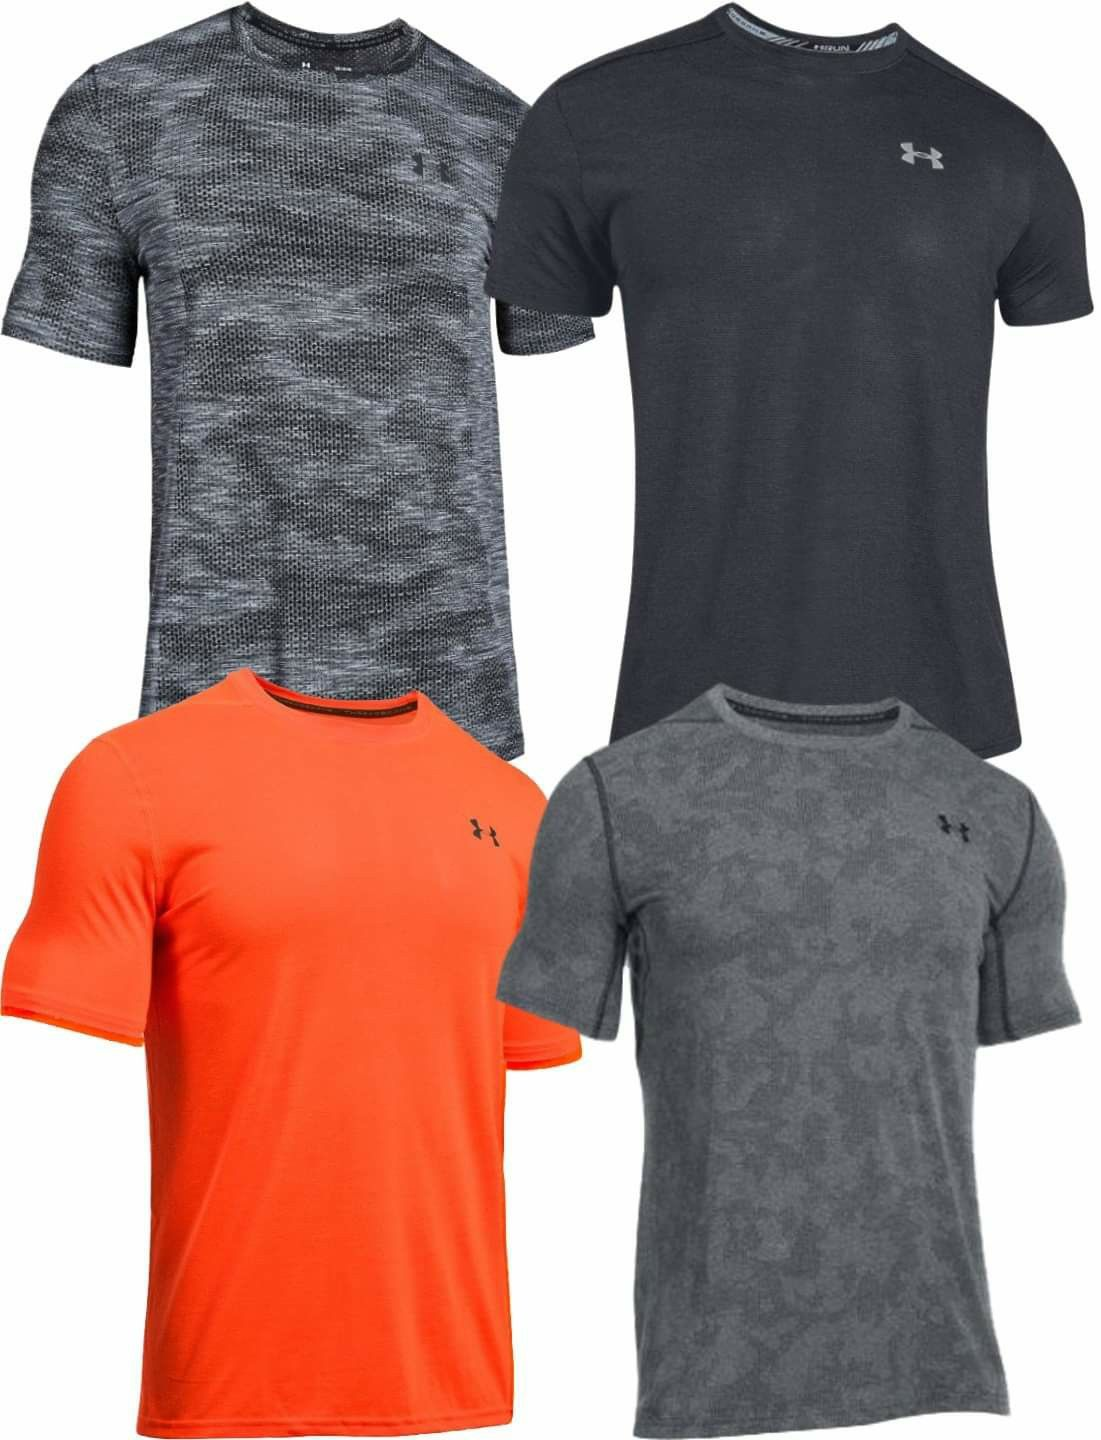 Moda Nota Ejecutante  Under Armour Threadborne Run T-shirts | Gym shirts mens, Mens running tops,  Tactical shorts